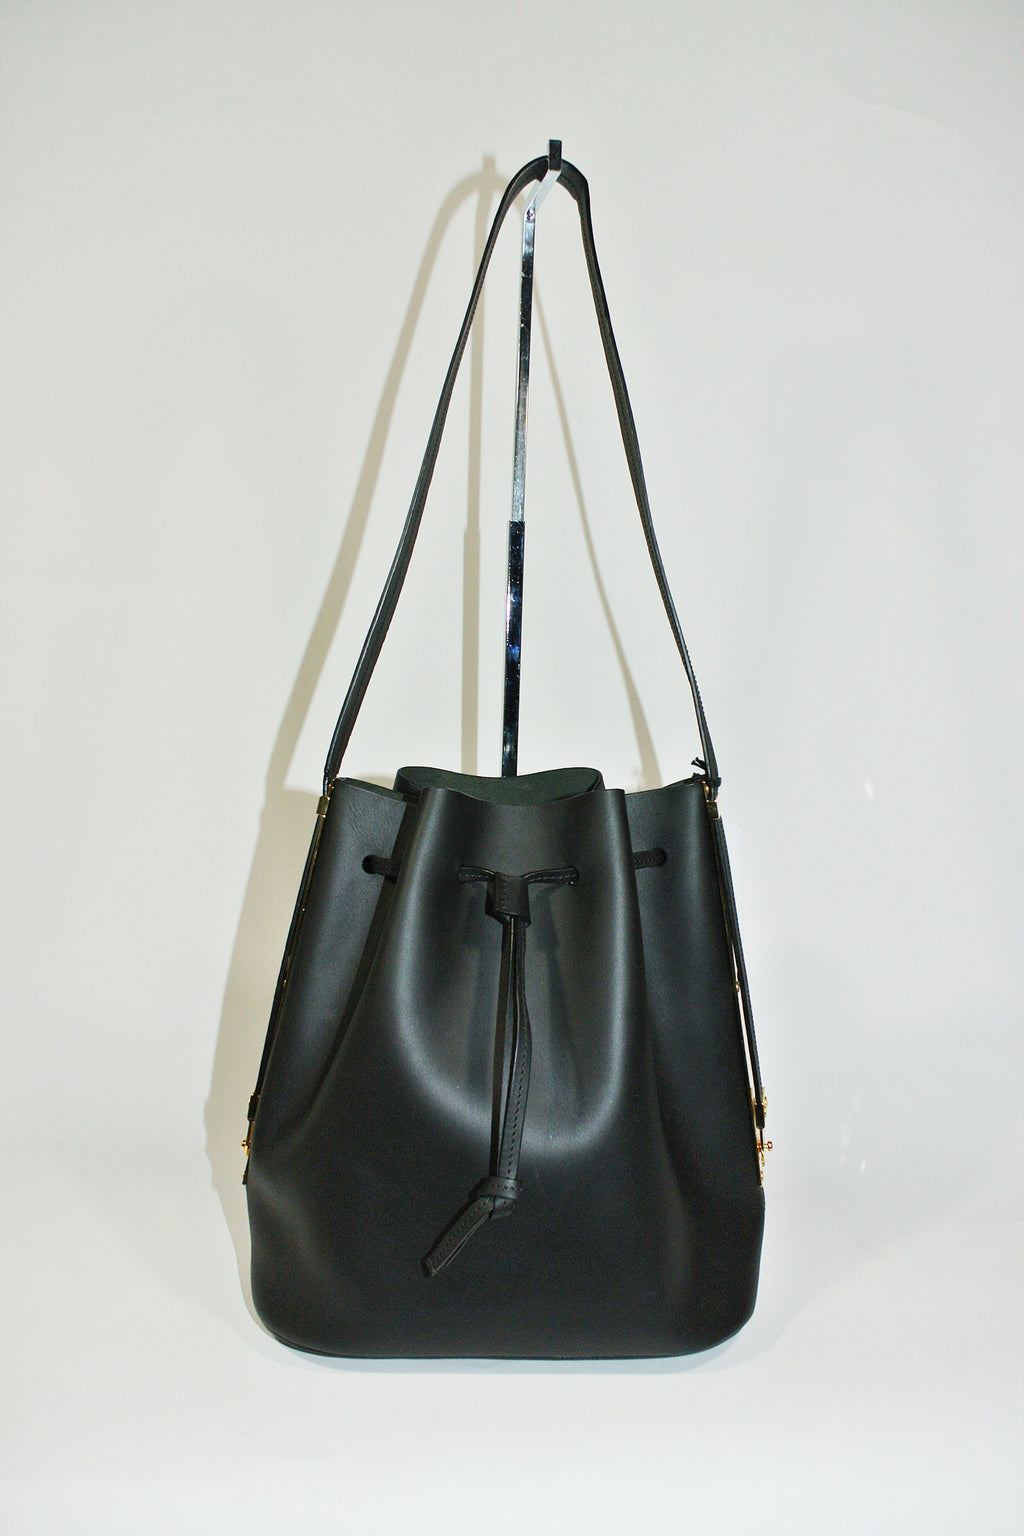 Sophie Hulme Black 'Fleetwood' Medium Leather Bucket Bag